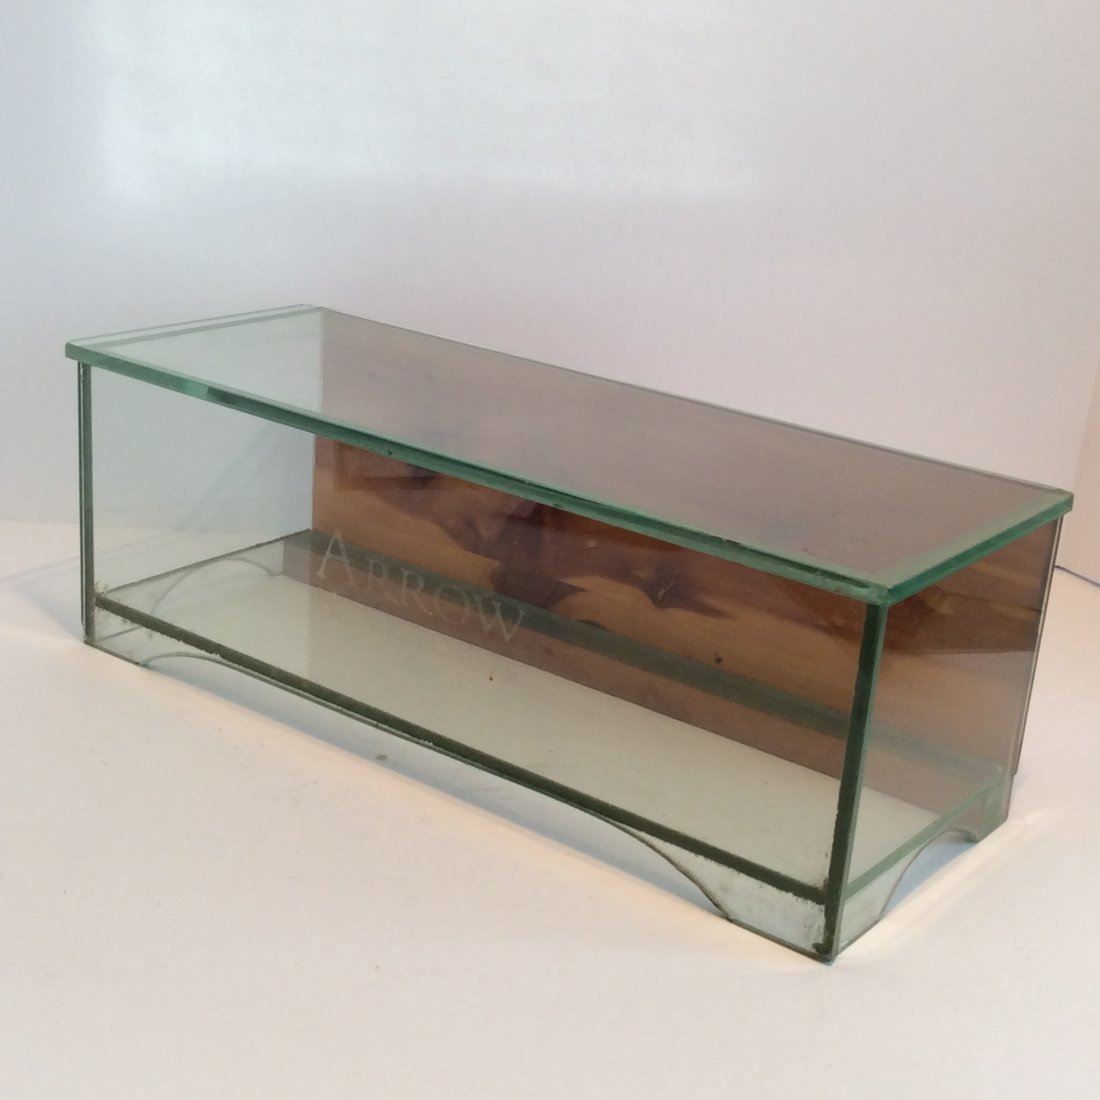 Antique Arrow Handerchiefs Glass Display Case